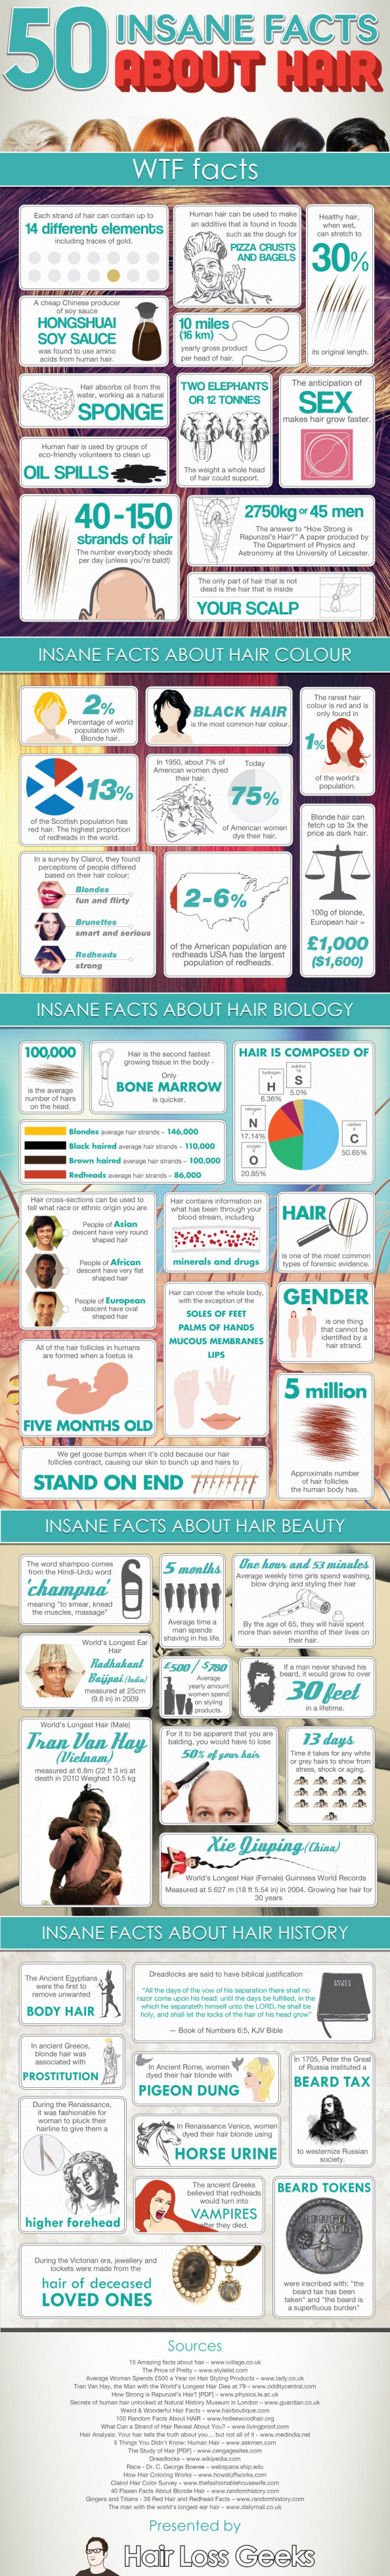 50 Insane Facts About Hair Infographic